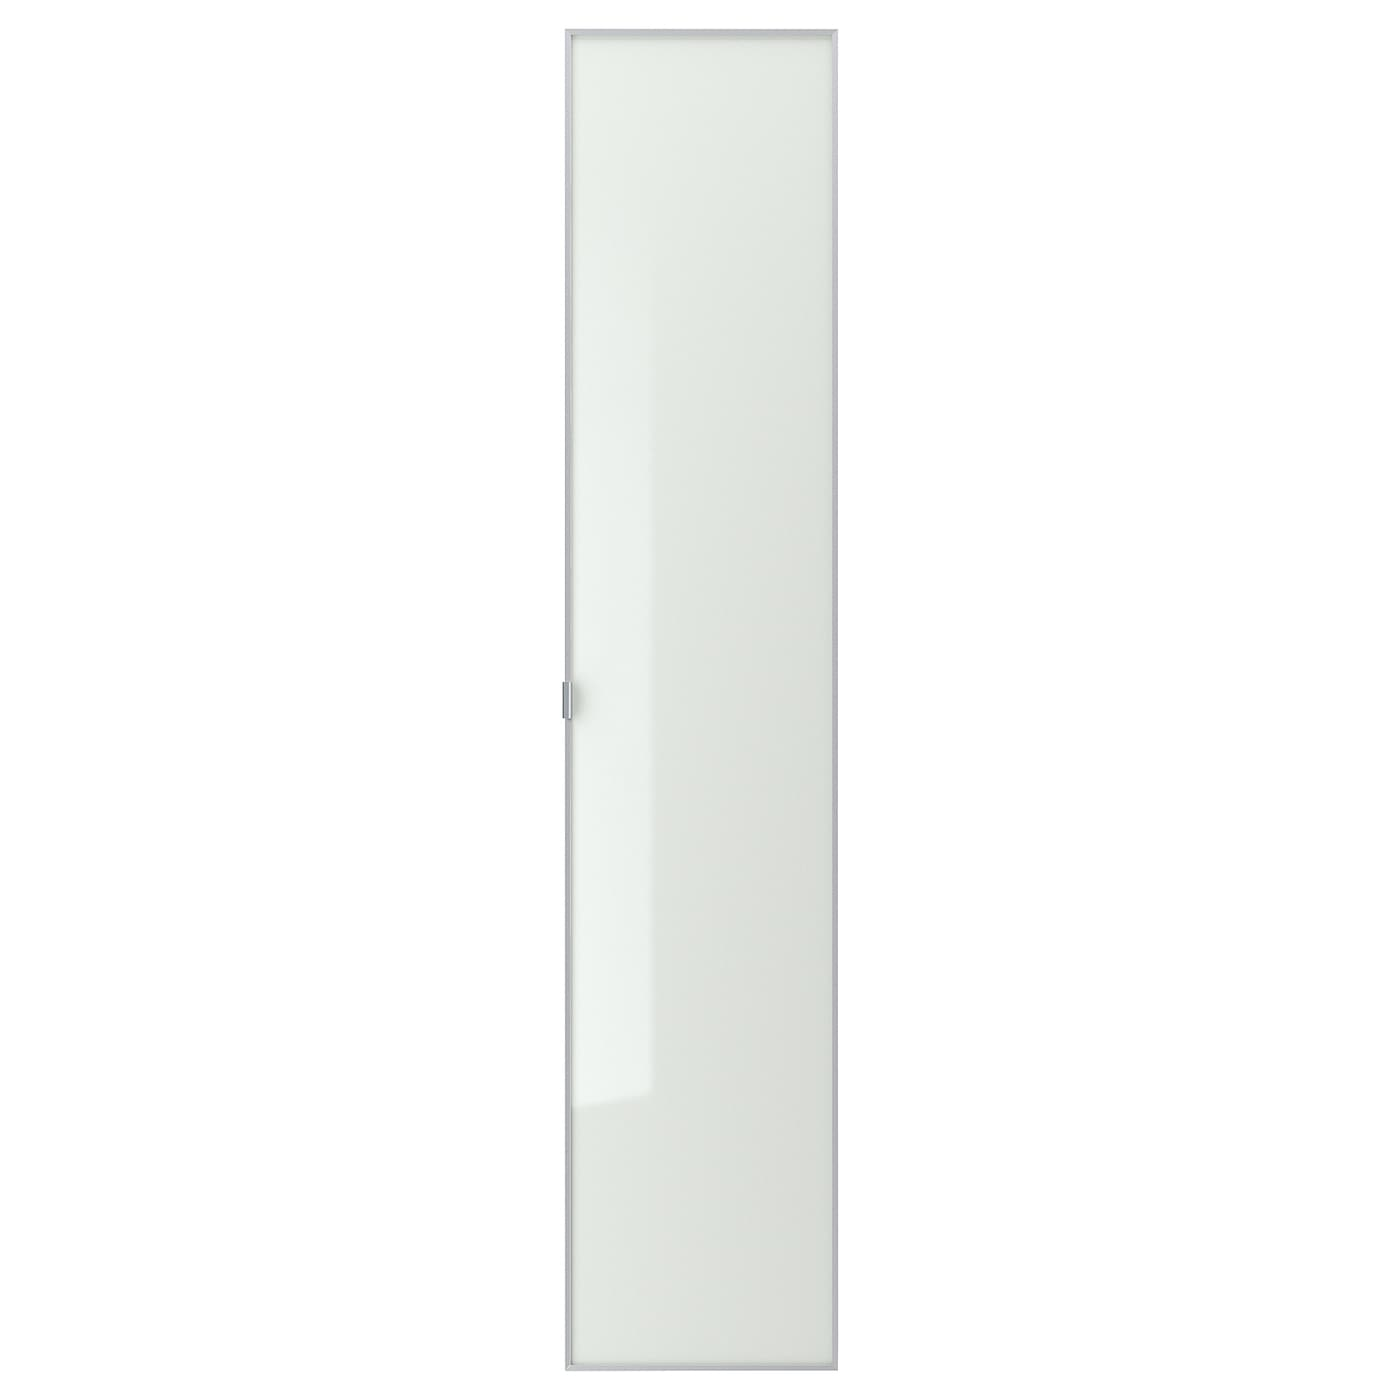 IKEA MORLIDEN glass door Adjustable hinges allow you to adjust the door horizontally and vertically.